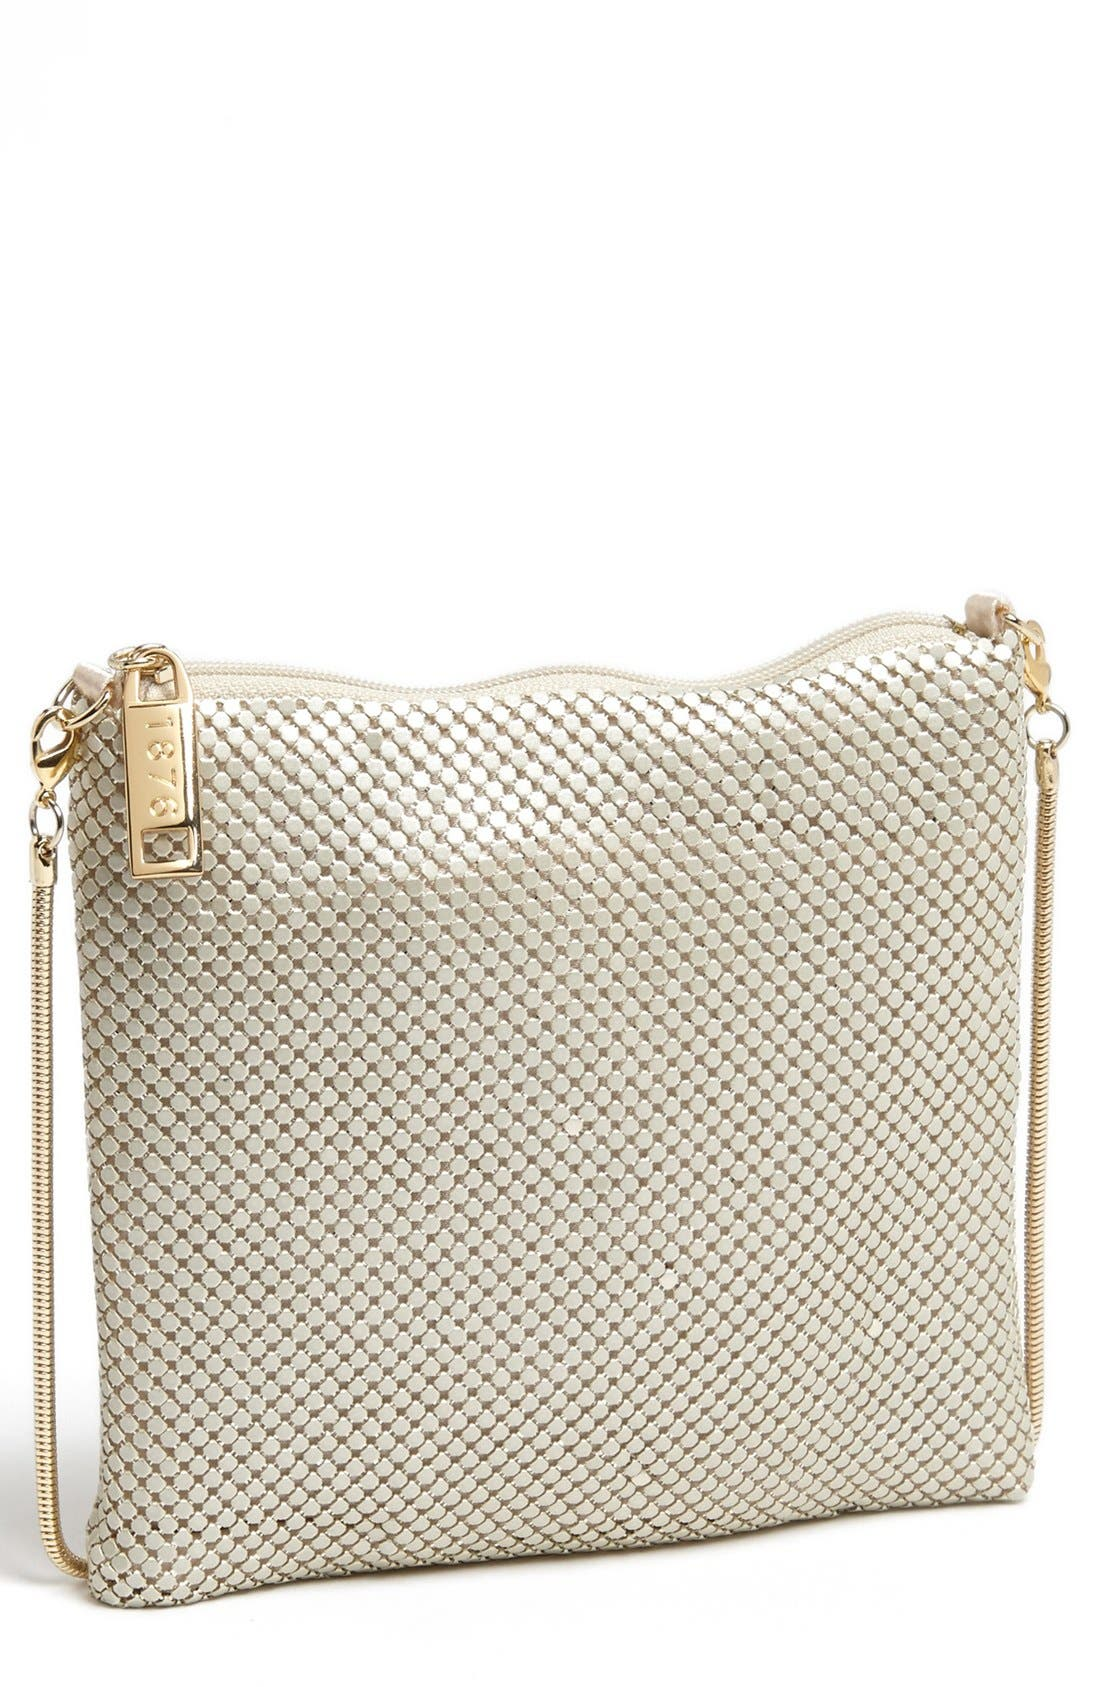 Alternate Image 1 Selected - Whiting & Davis Clutch